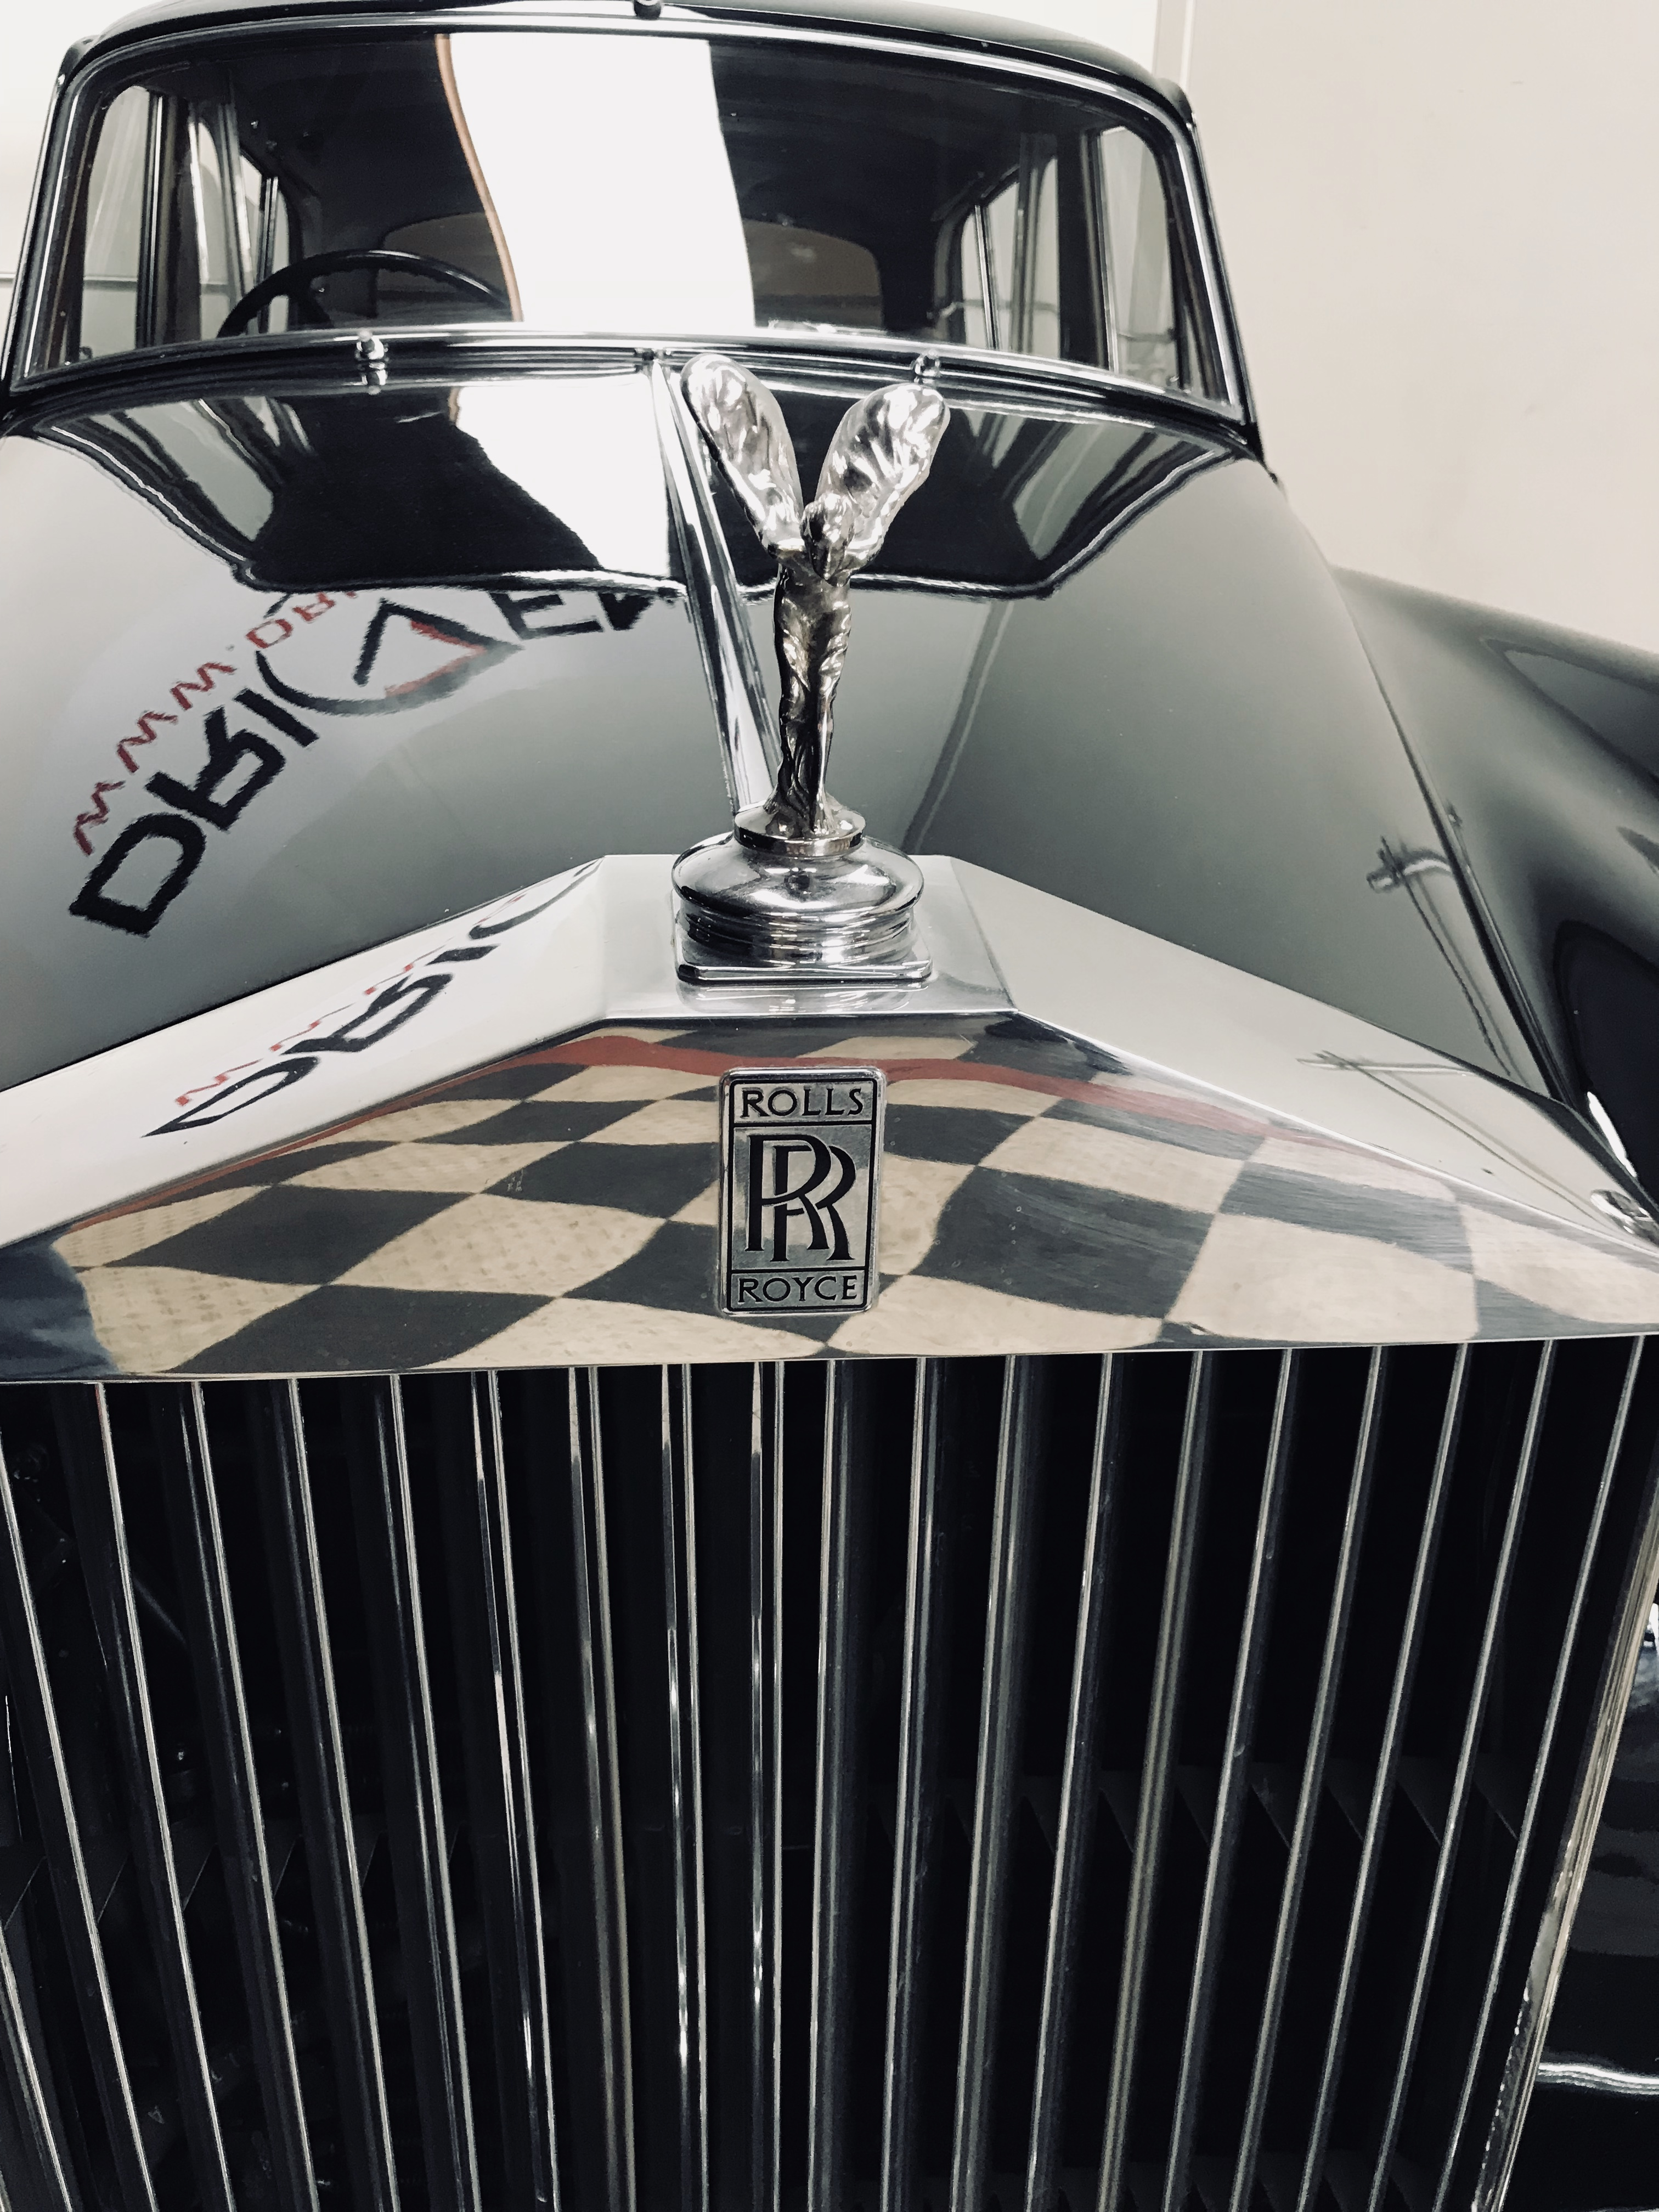 1959 Rolls Royce S-1 Limo by DRIVEN.co